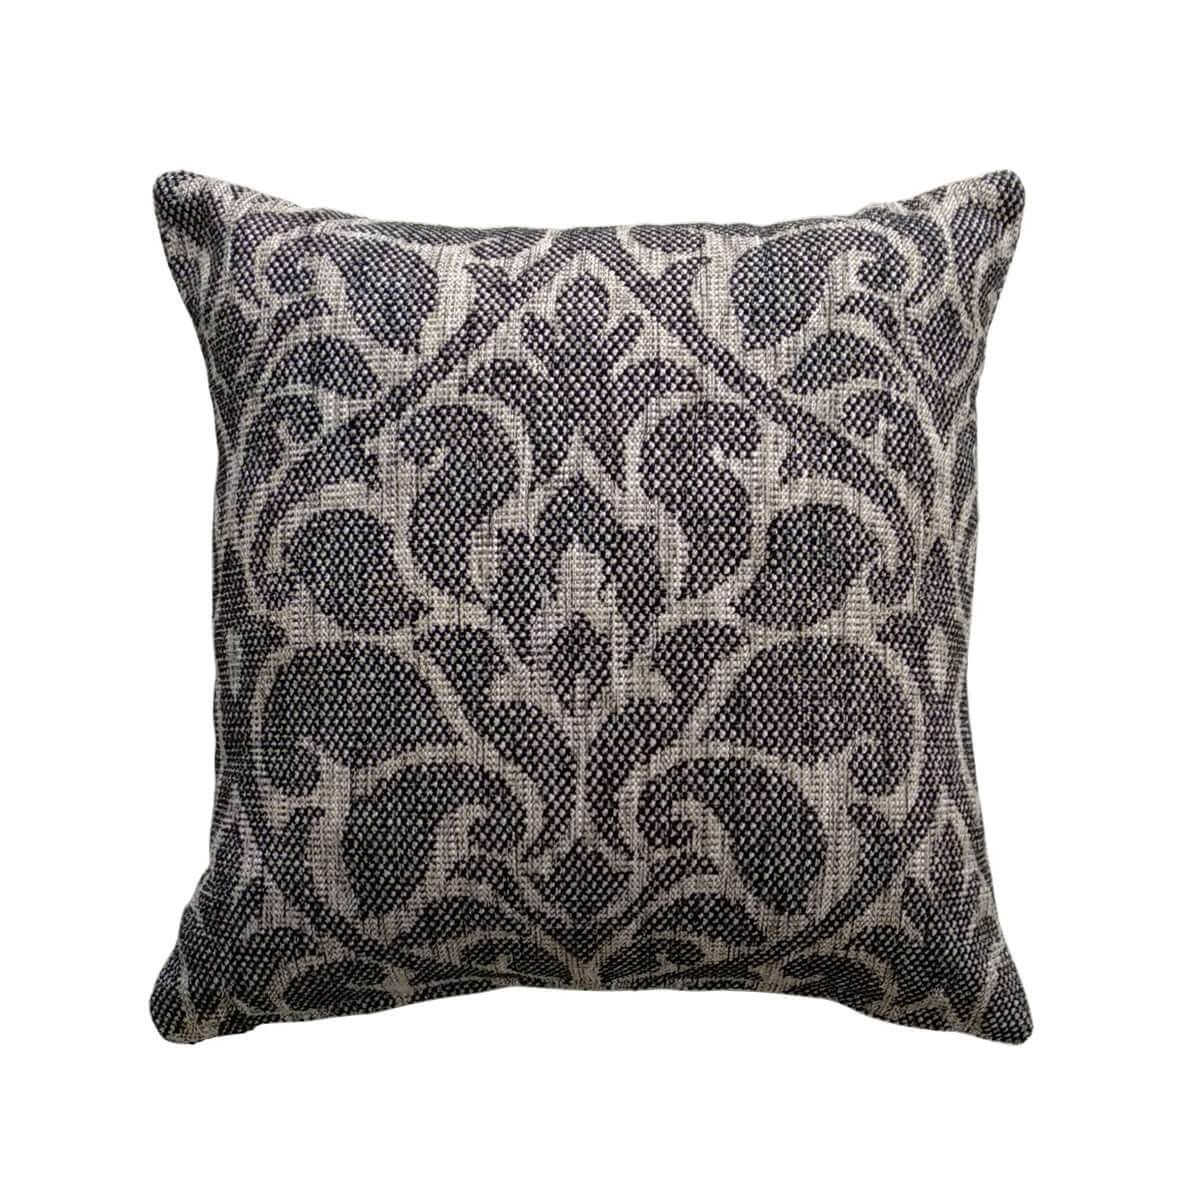 Tara Charcoal Cushion Cover